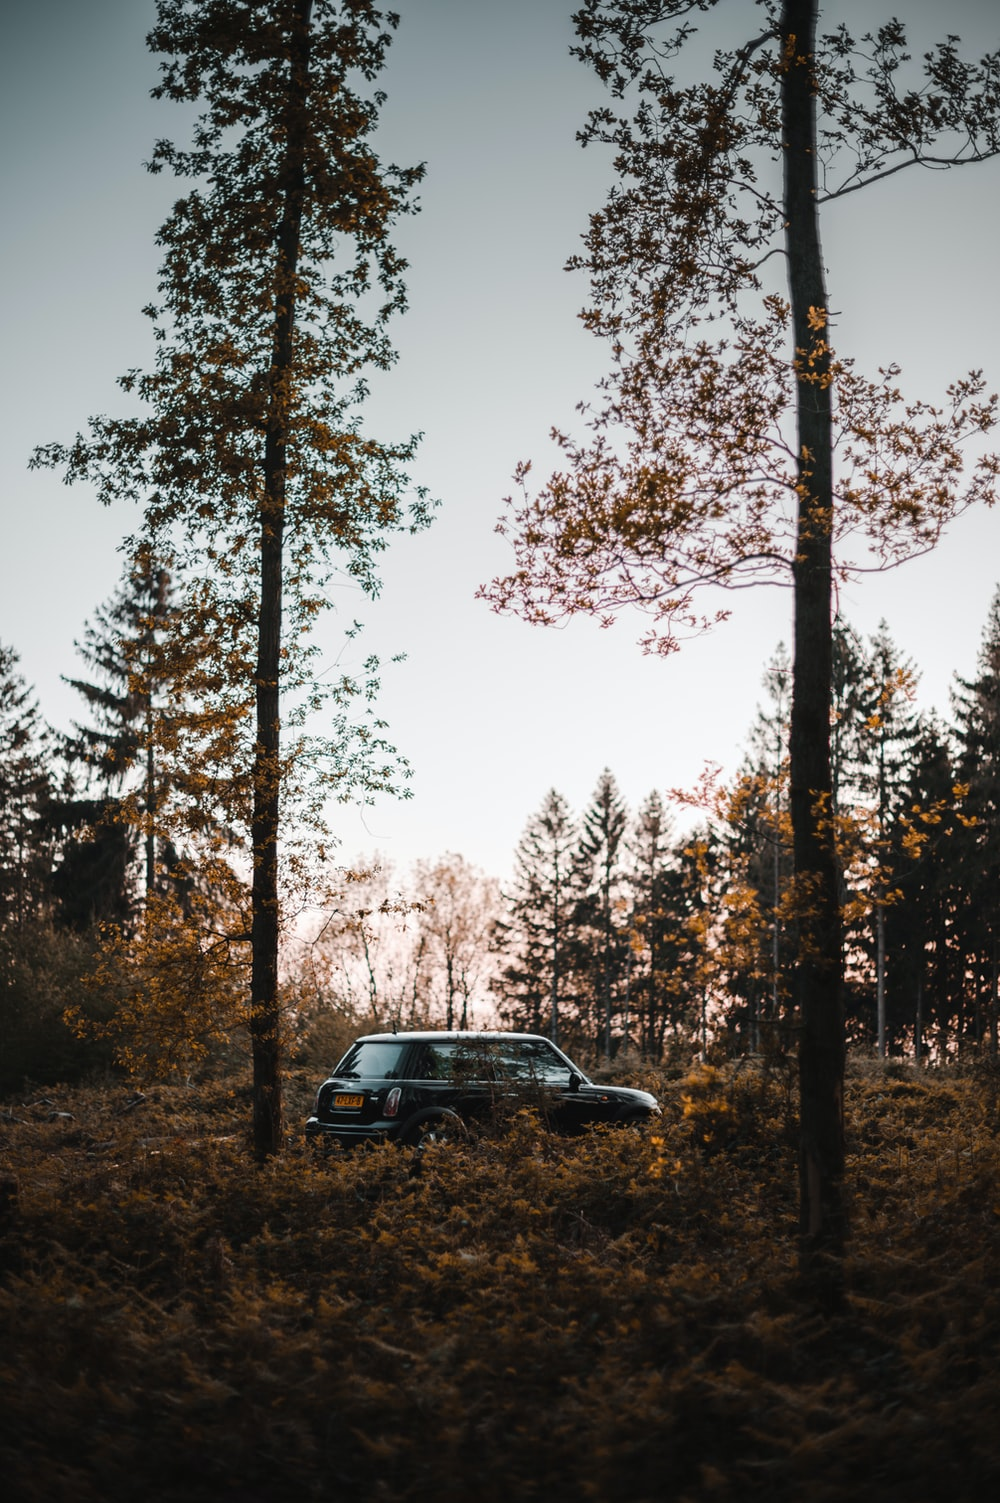 black suv parked near trees during daytime